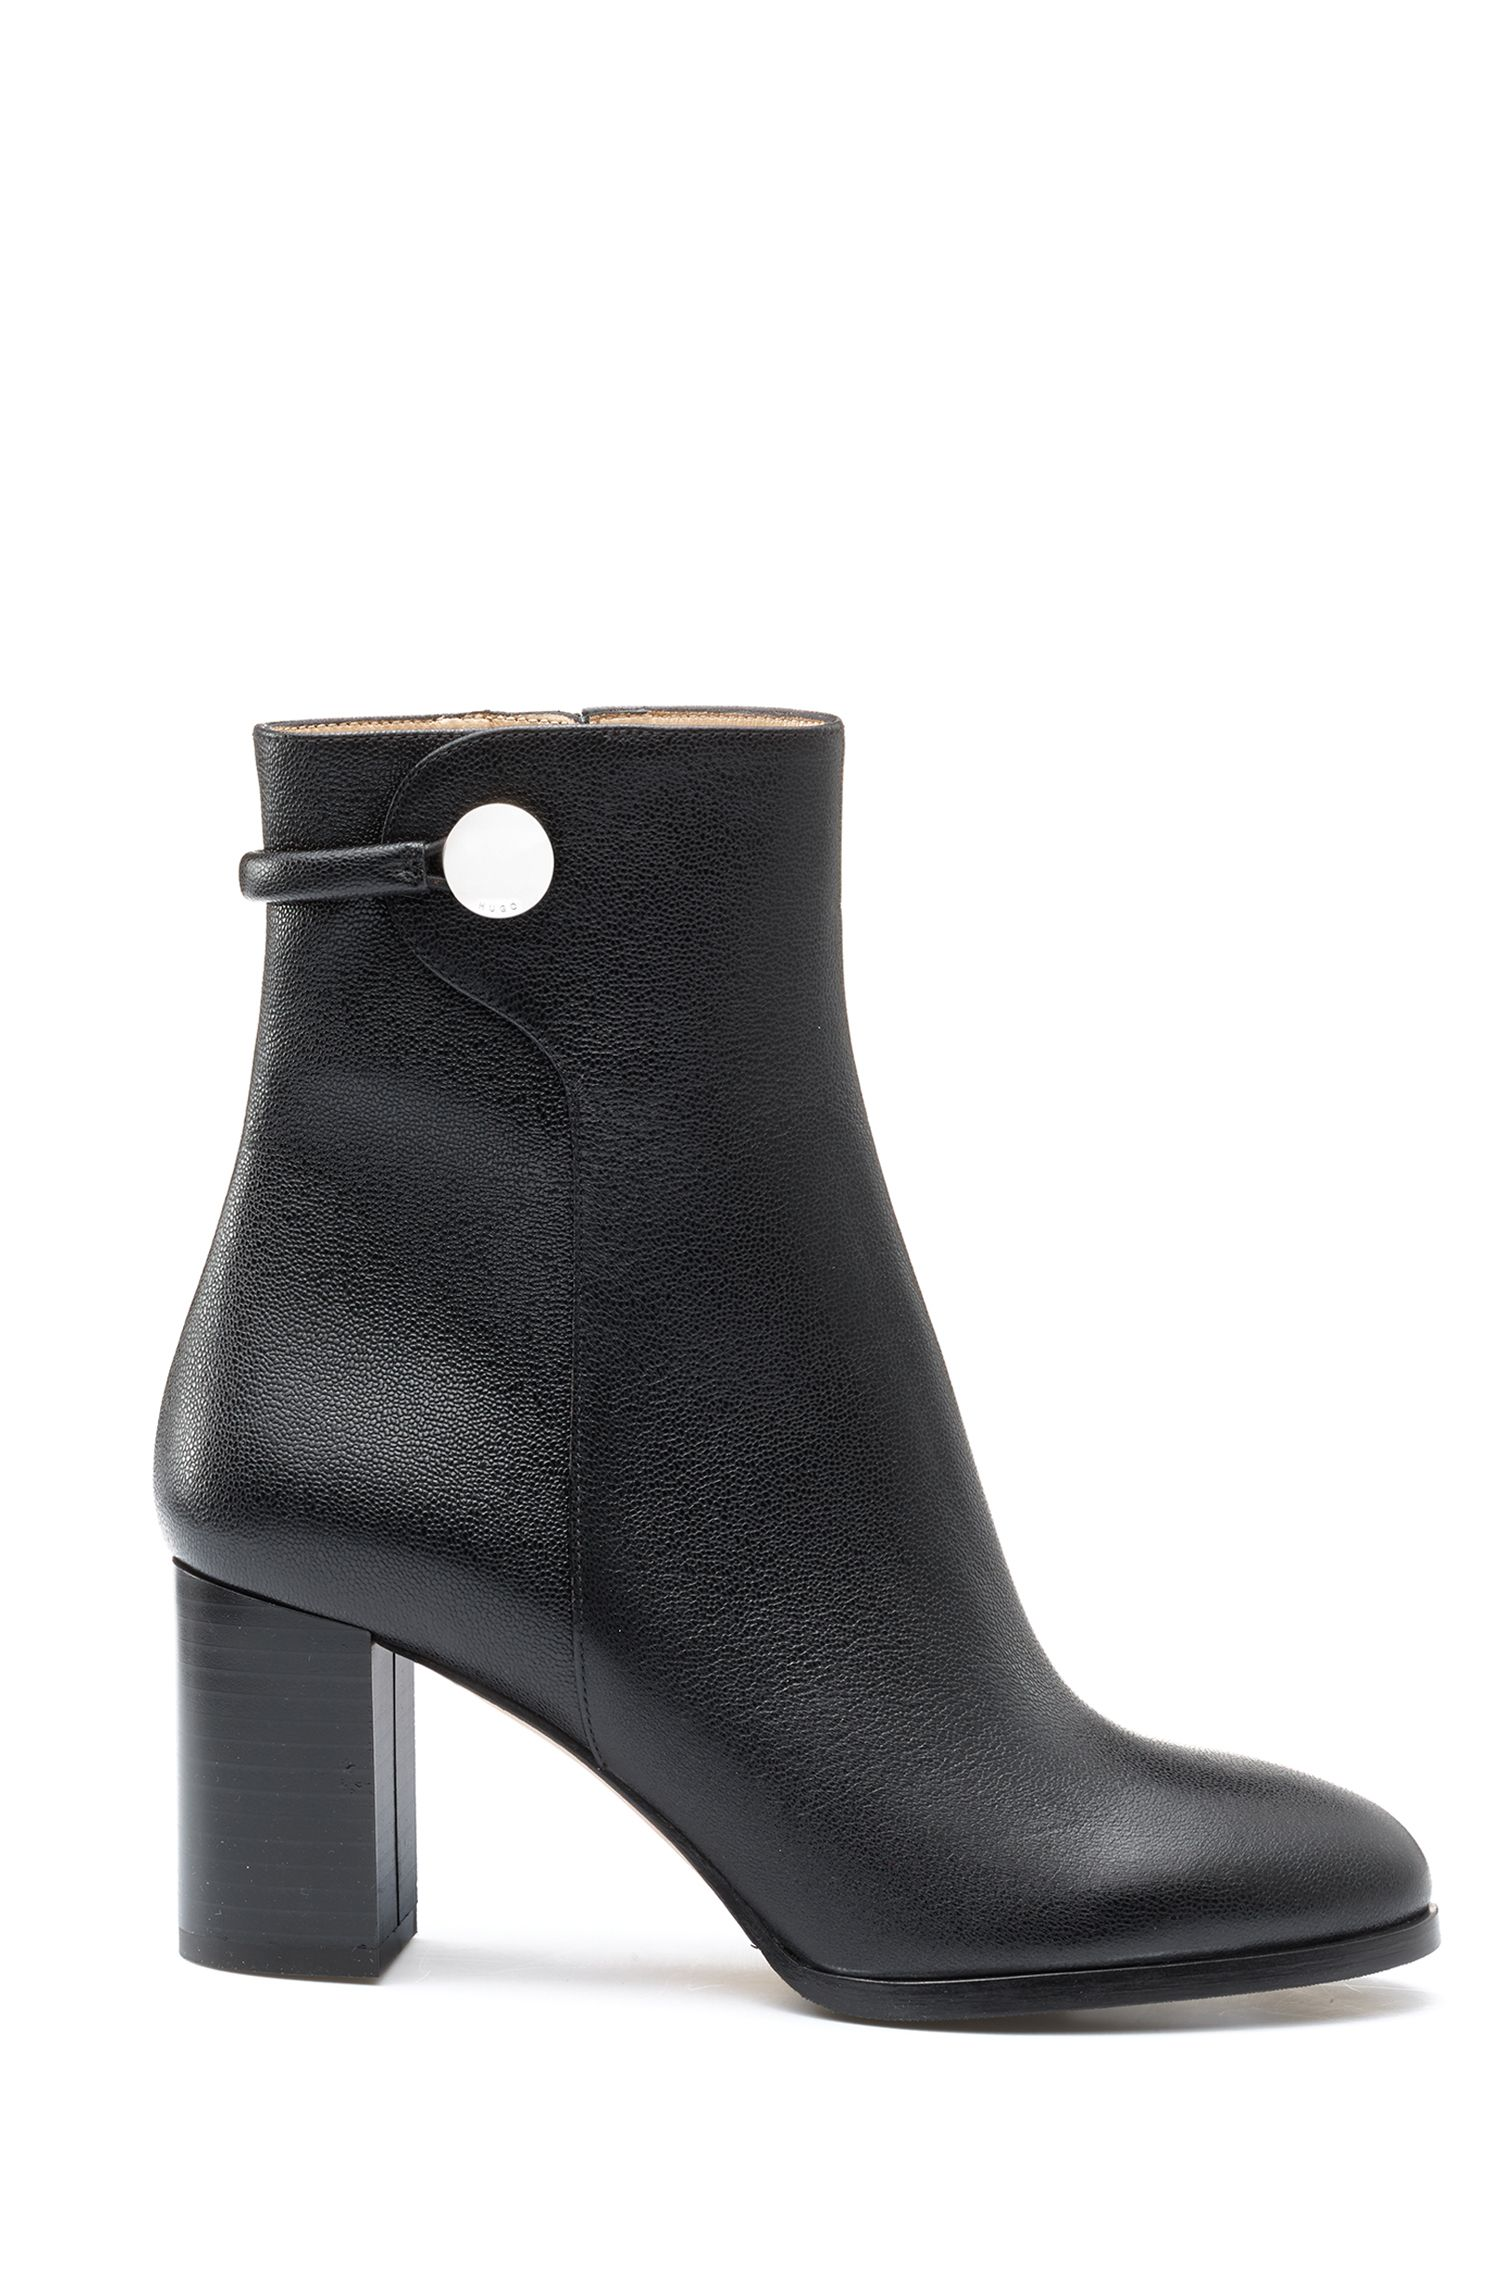 Mid-calf boots in grained Italian leather